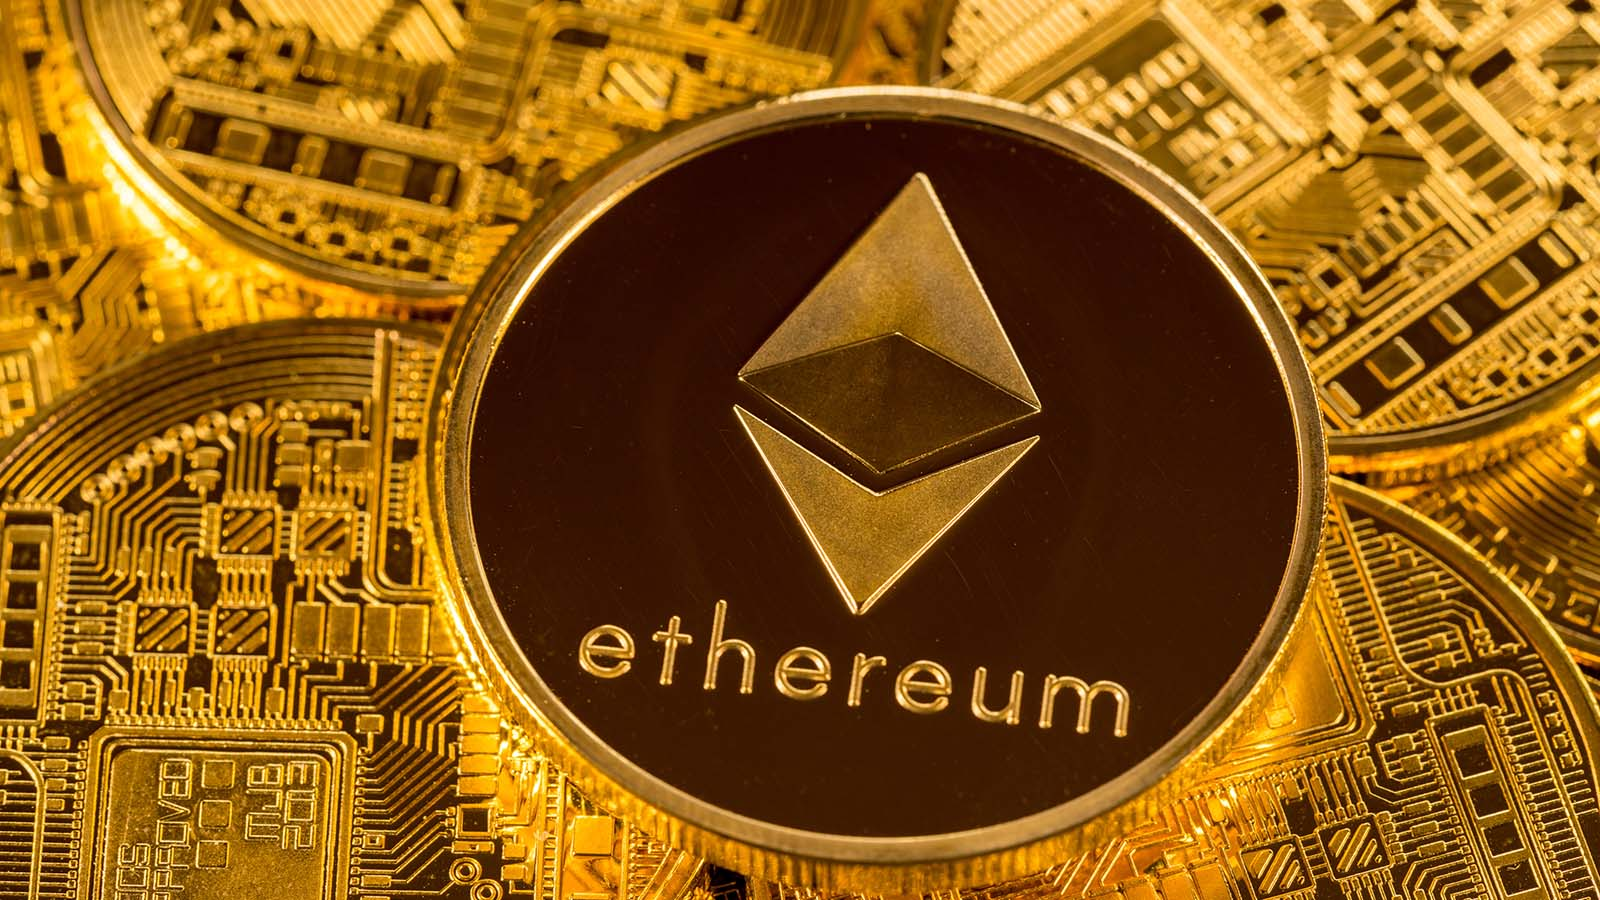 JPMorgan and Mastercard invest $65 million in Ethereum